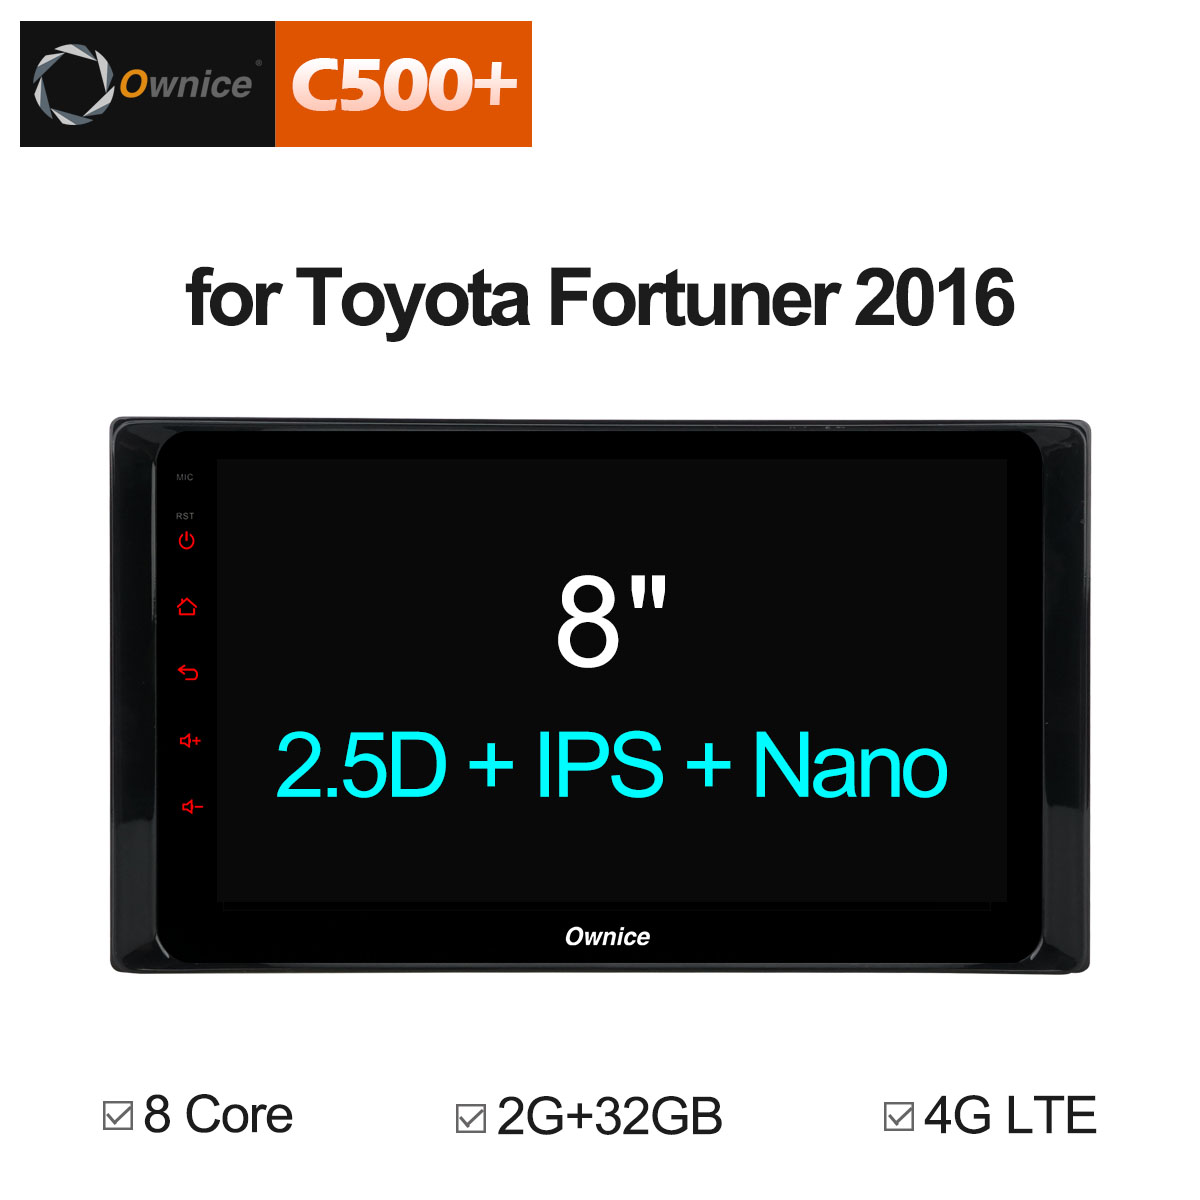 Ownice C500+ G10 Android 8.1 Octa Core Car DVD Radio GPS Player for Toyota Fortuner 2016 Navigation Audio With 2G RAM 32G ROM цена